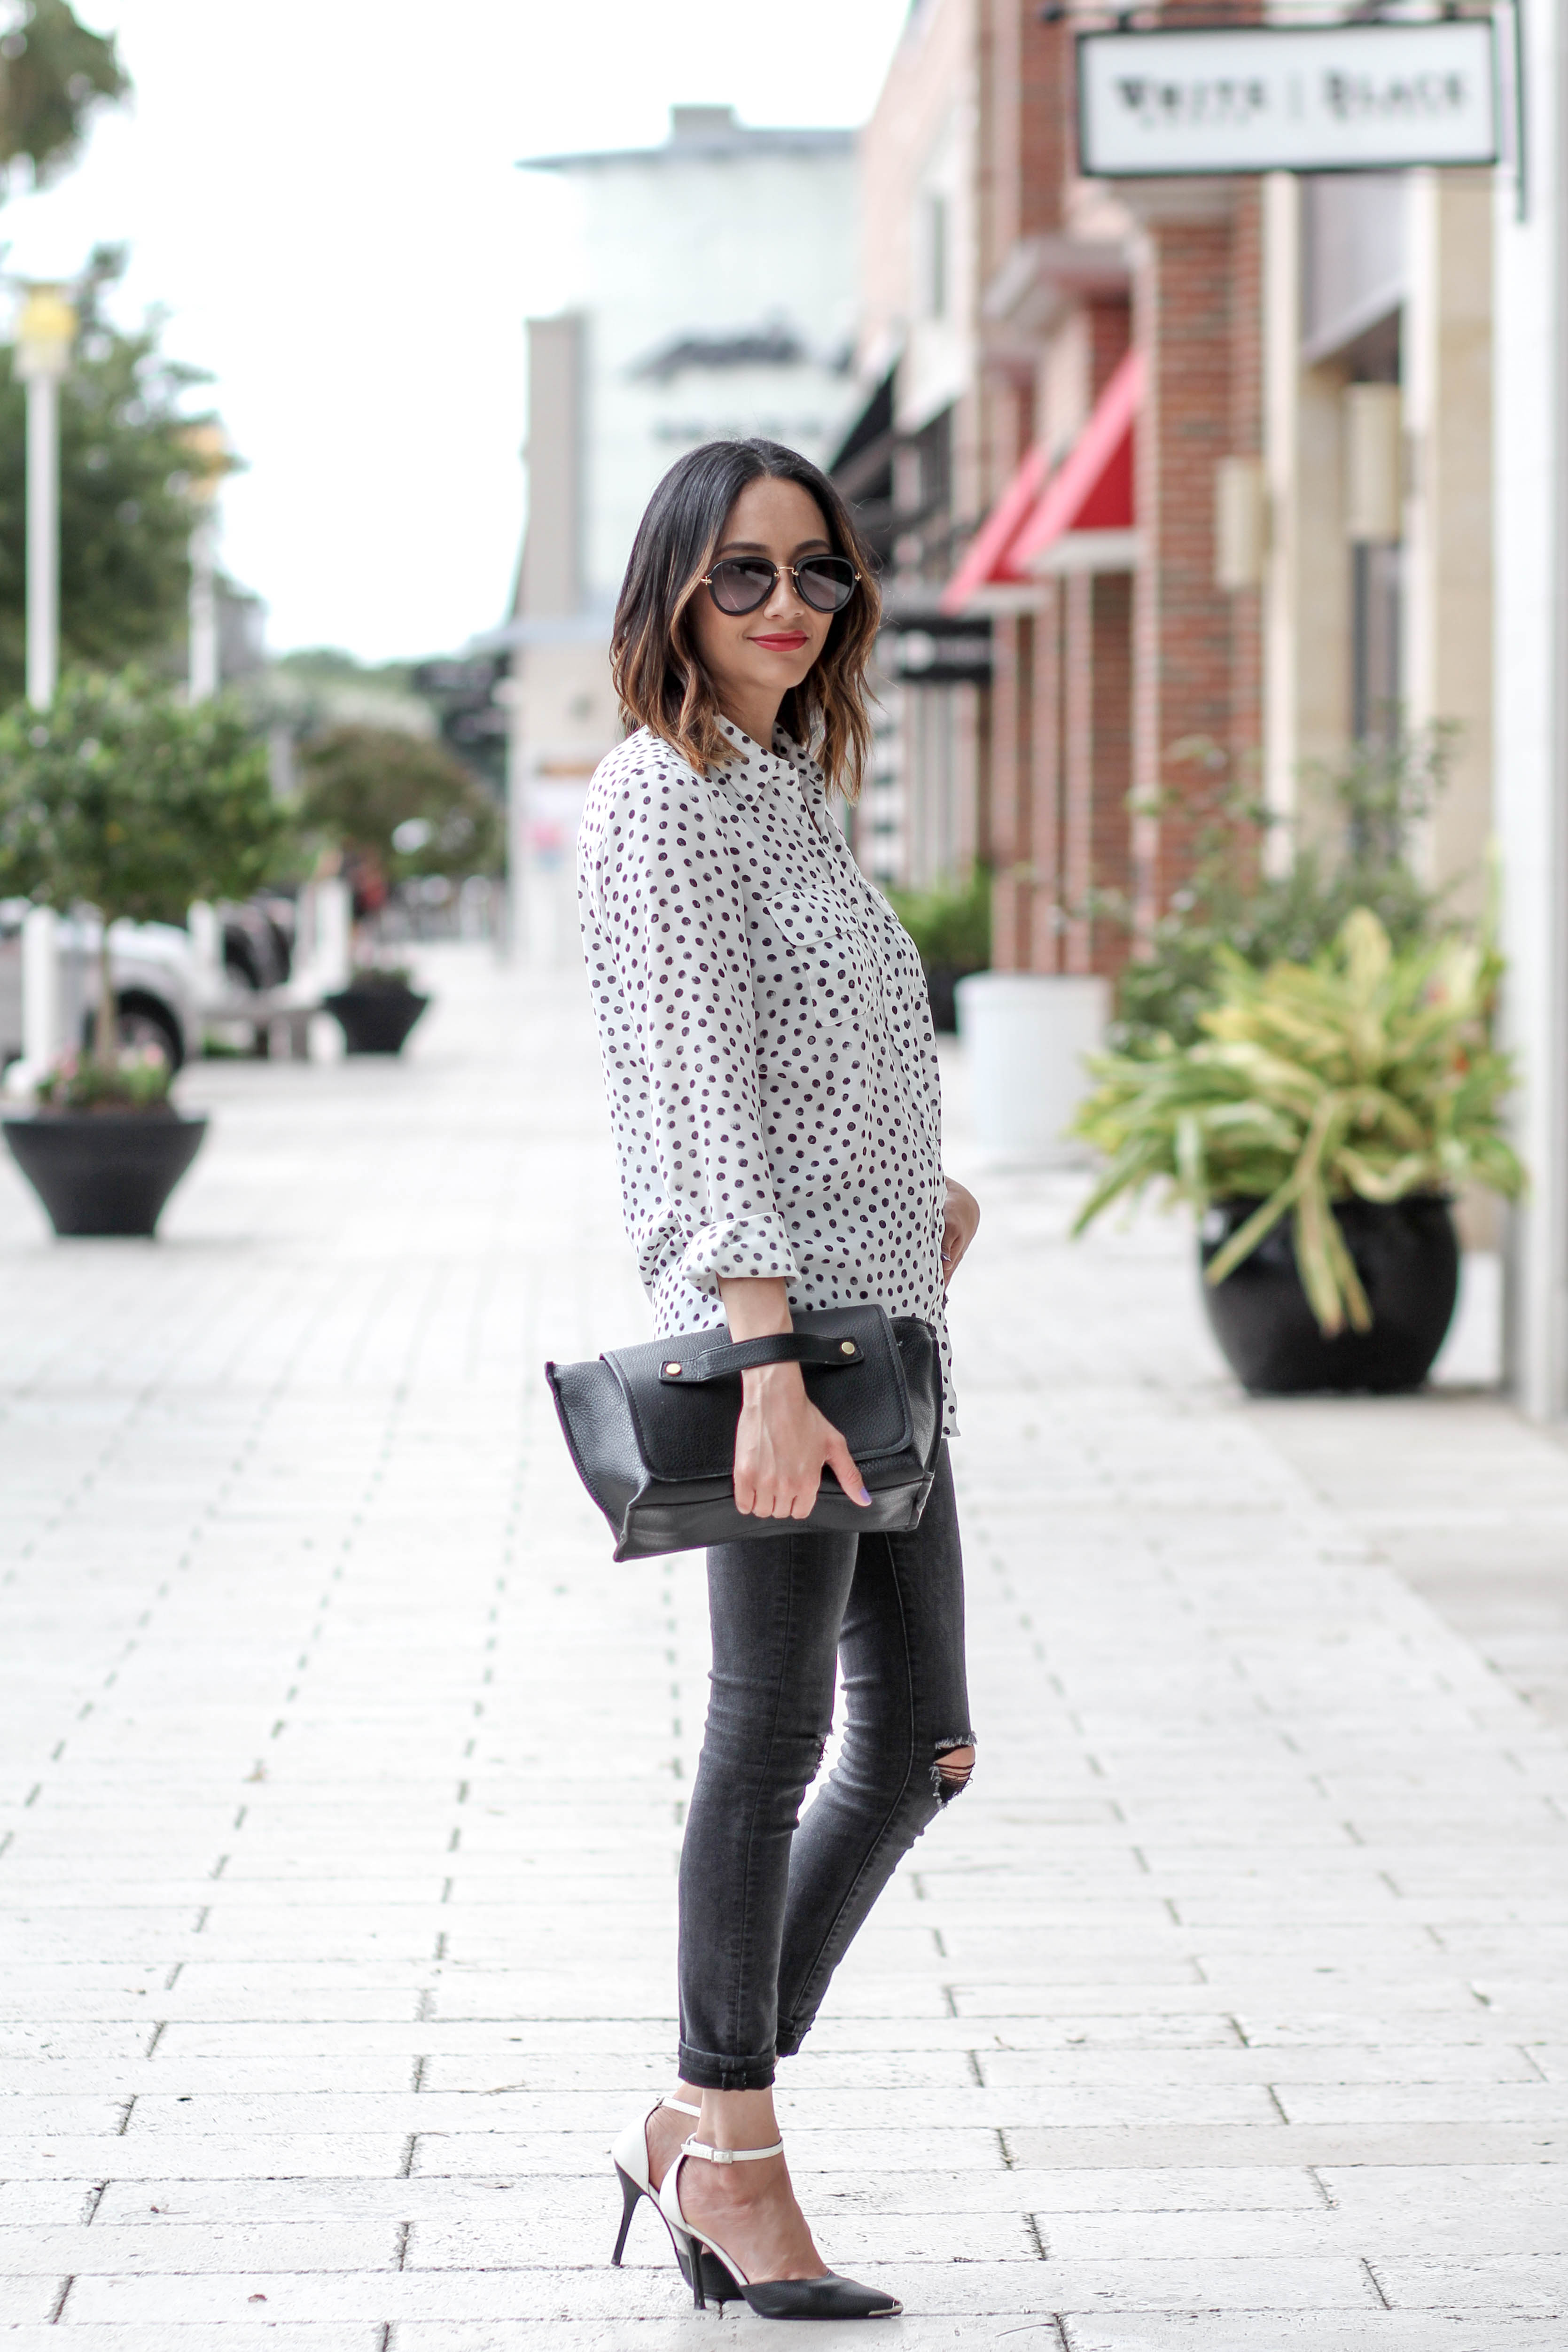 Polka Dotted Top and Black Skinny Jeans   Easy Casual Look